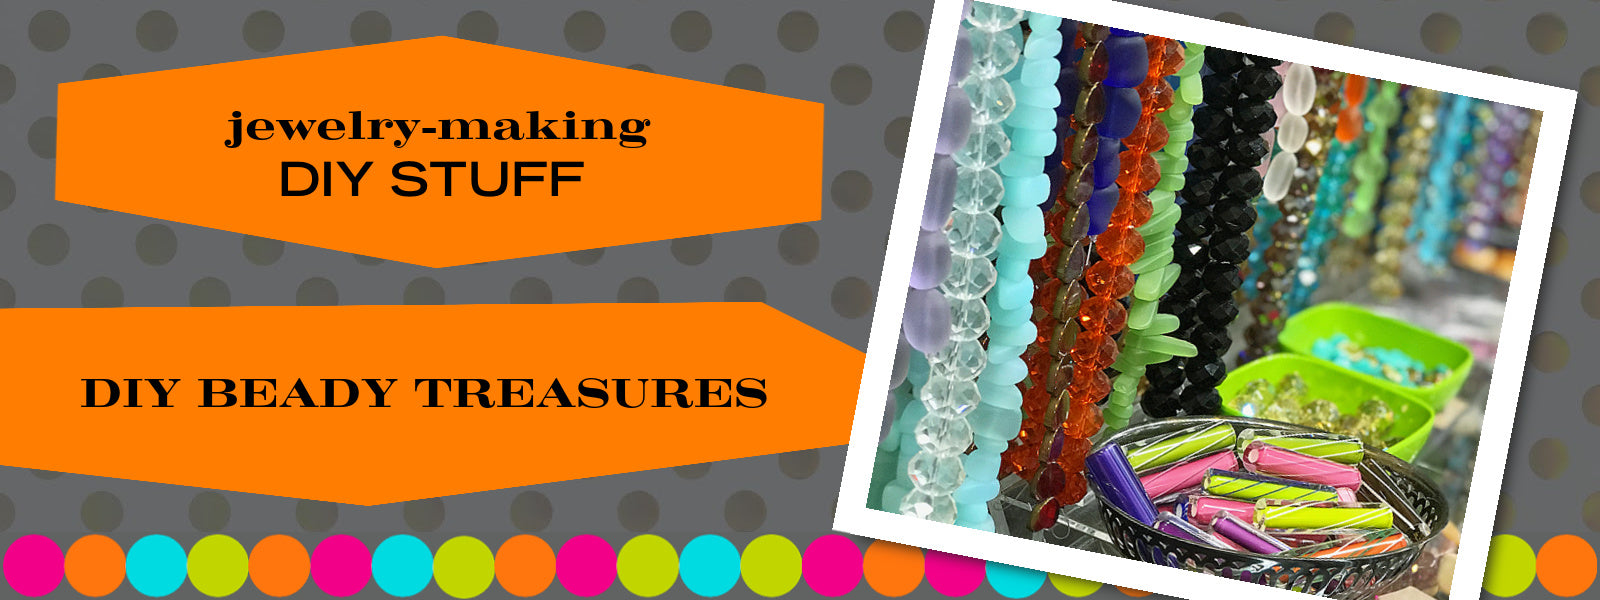 Suzie Q Studio is the home of unique Jewelry Making Supplies for all your DIY Jewelry Making Projects. Our selection of luscious beads is sure to inspire. Pure inspiration for you to express your own inimitable sense of style.